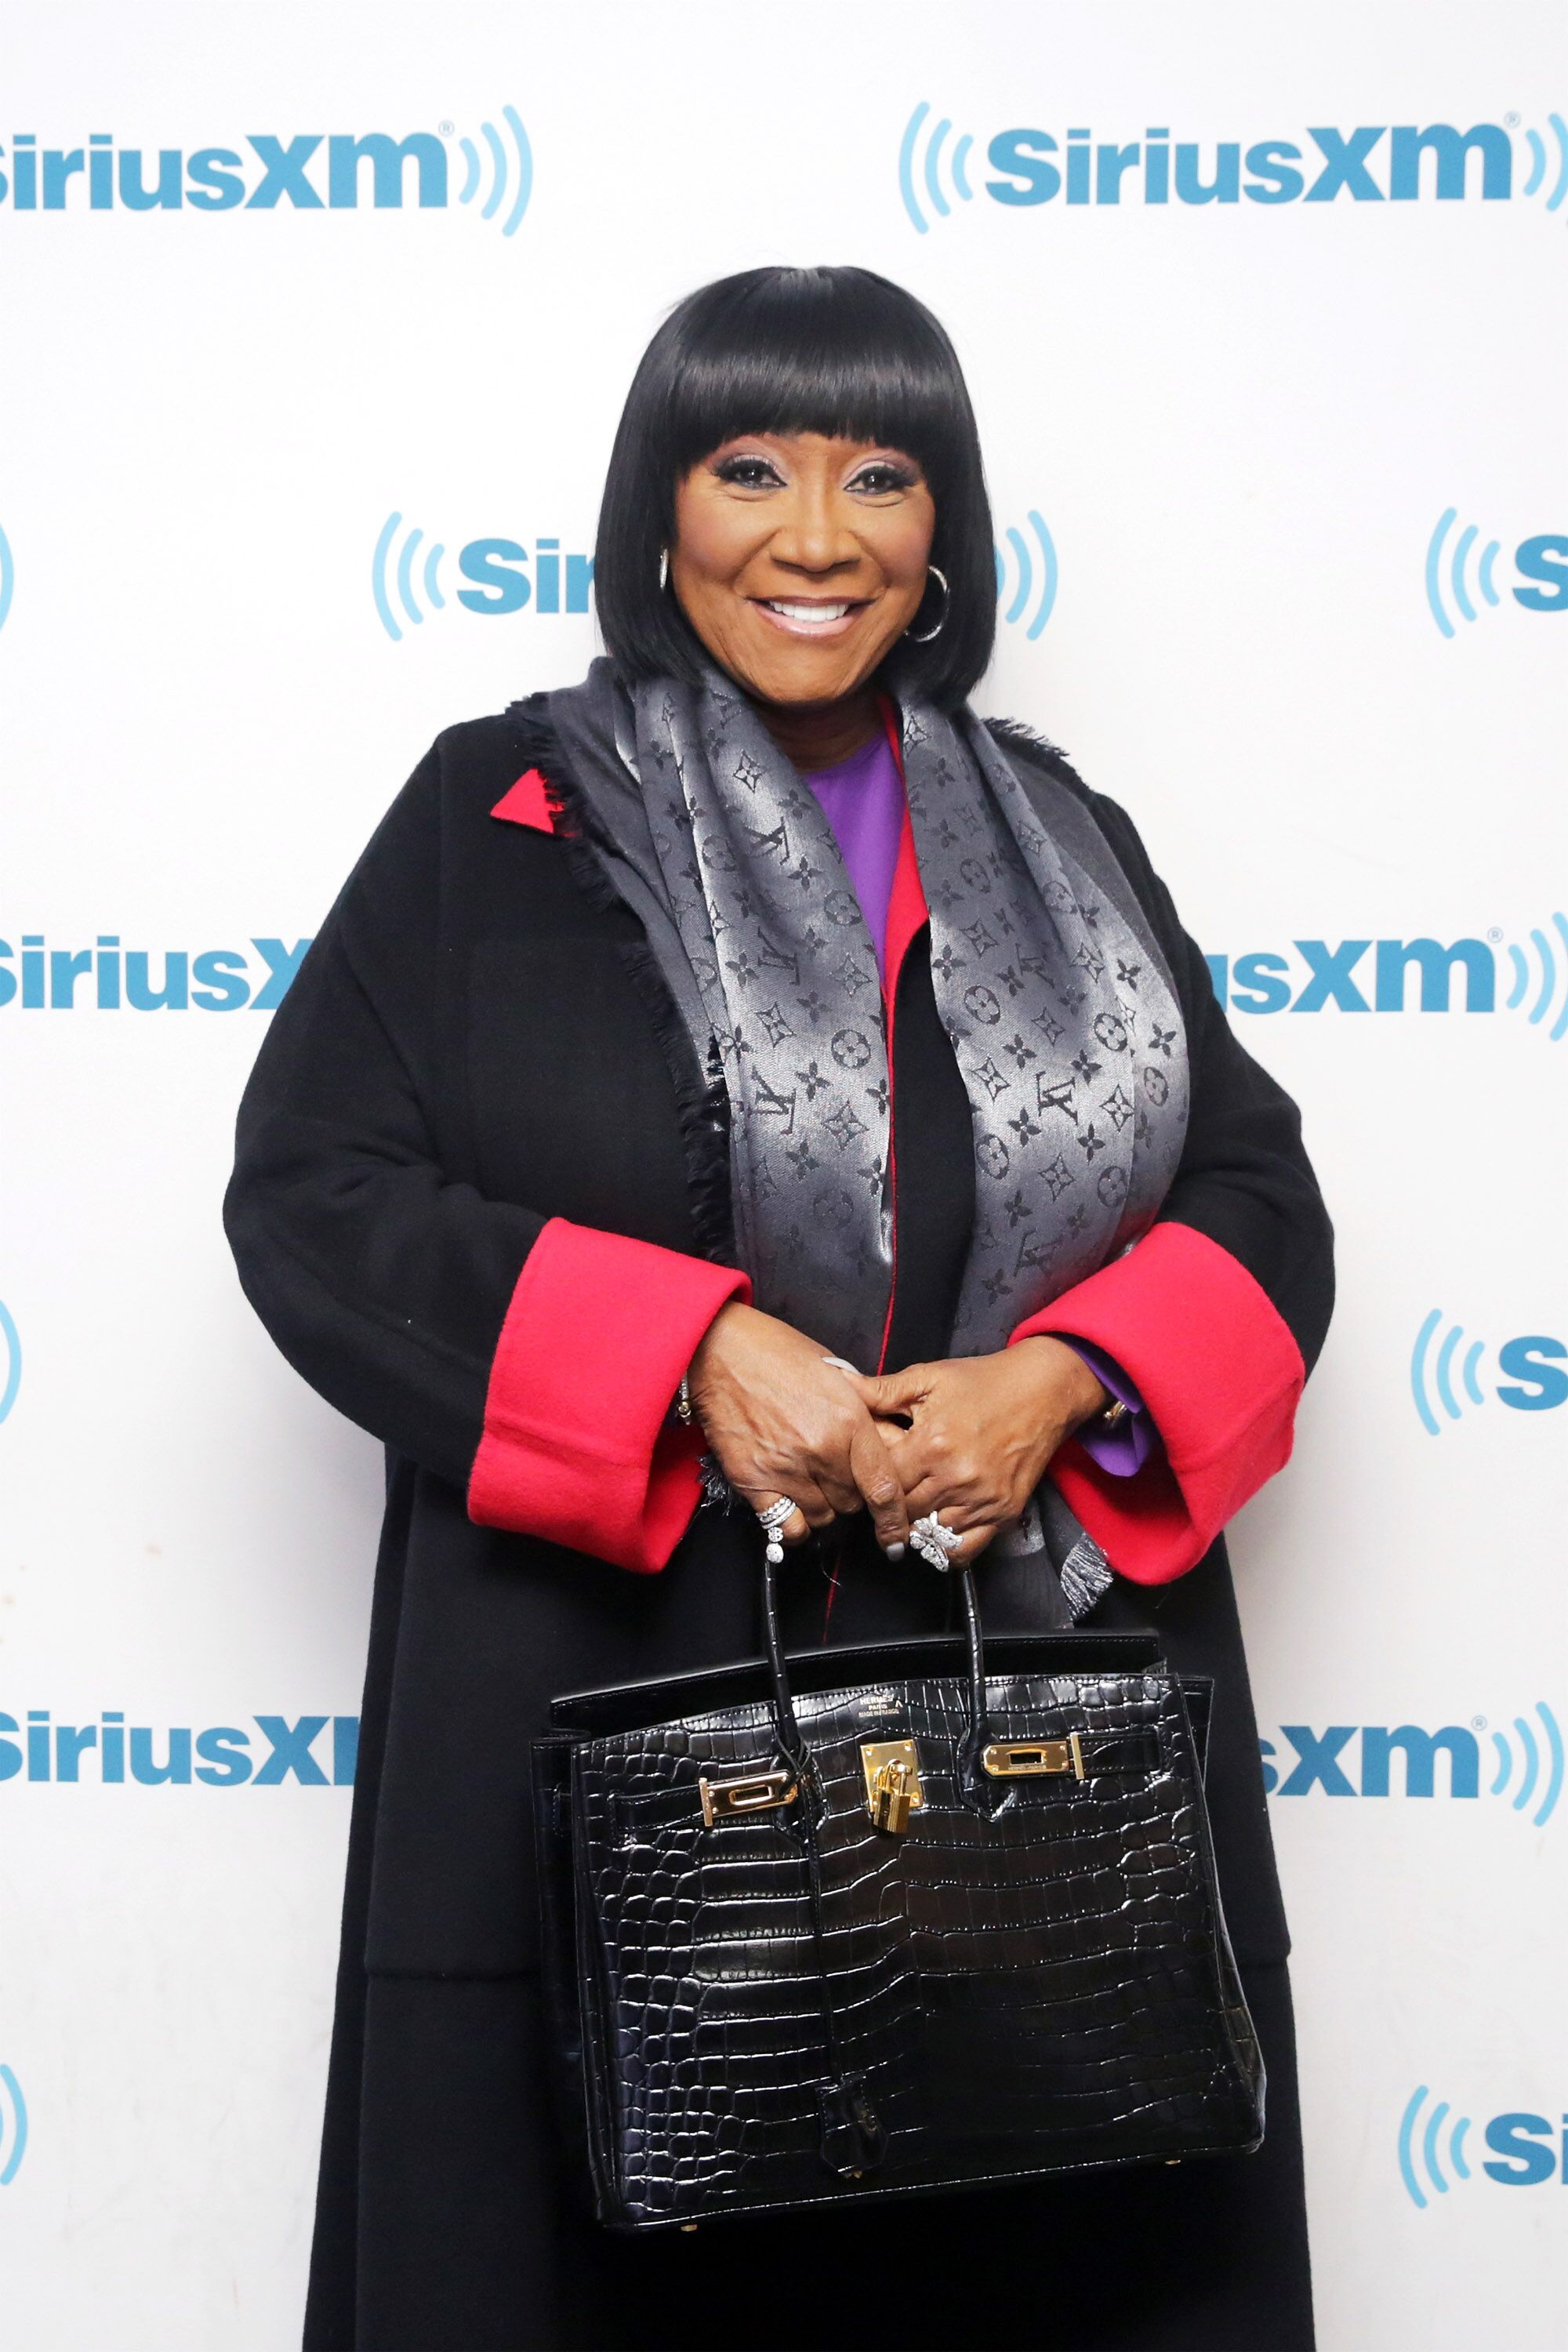 Patti LaBelle at a SiriusXM red carpet event | Source: Getty Images/GlobalImagesUkraine